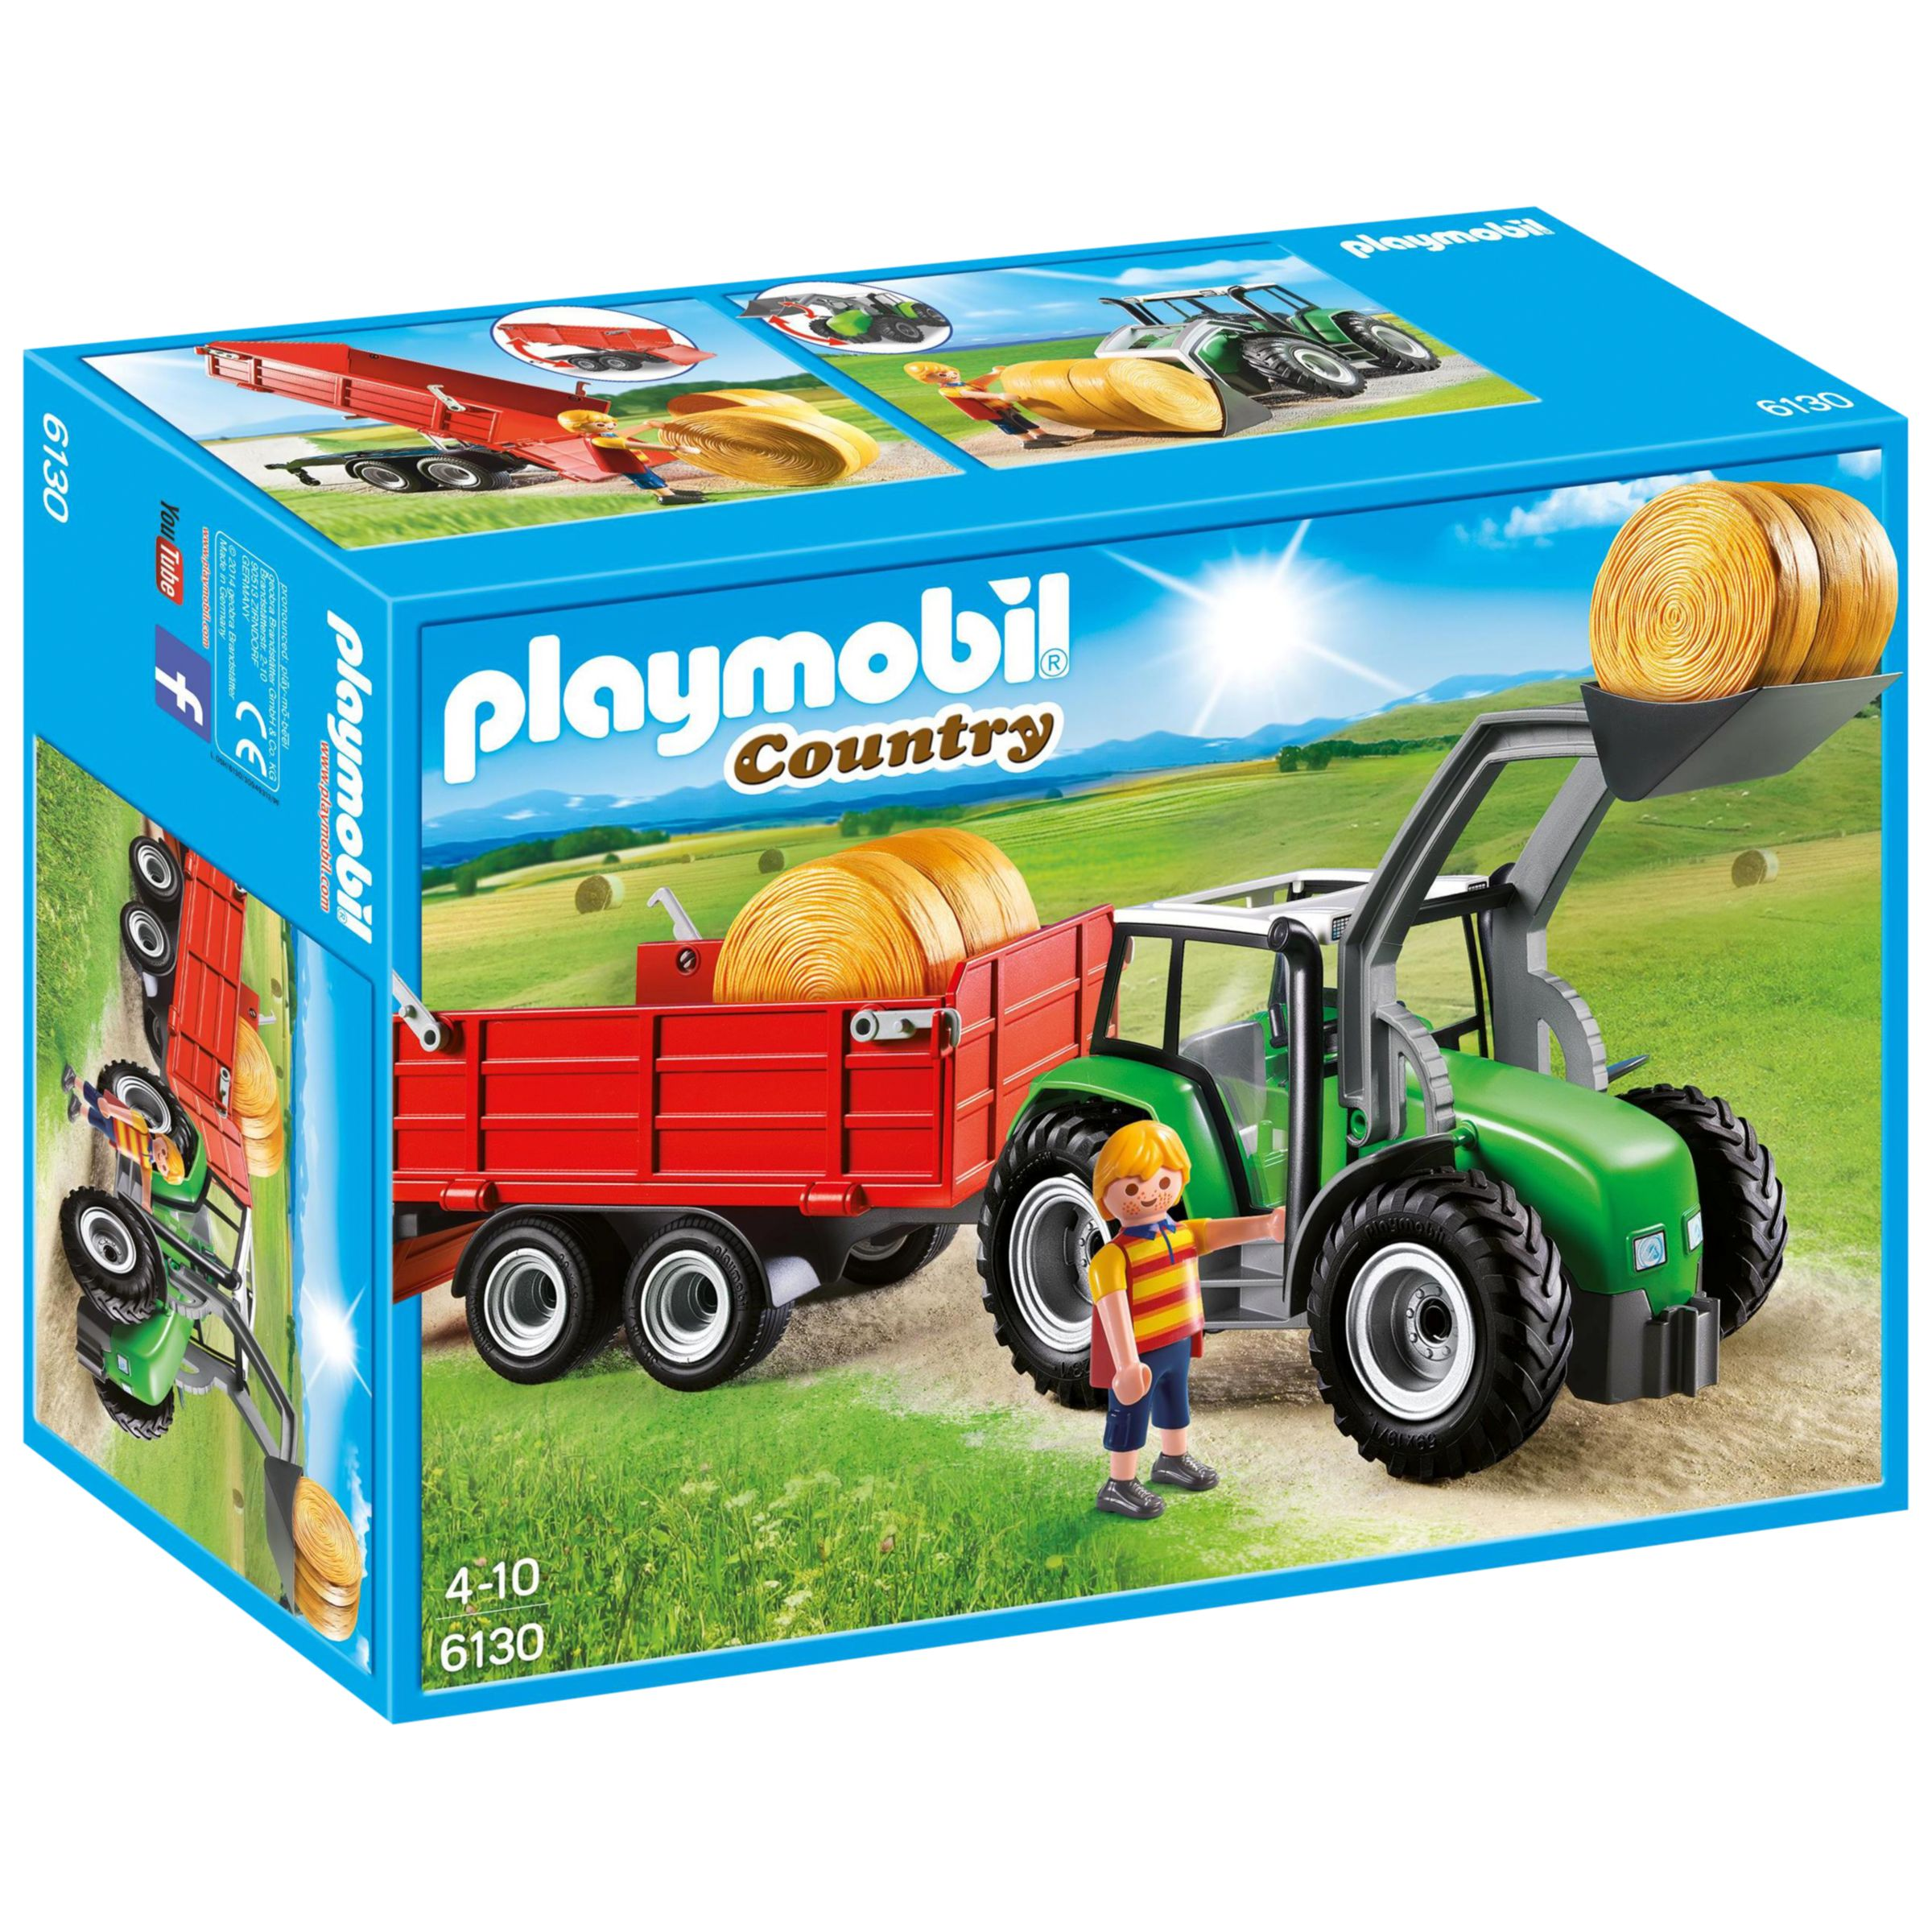 Playmobil Country Farm Large Tractor Bluewater 163 19 99